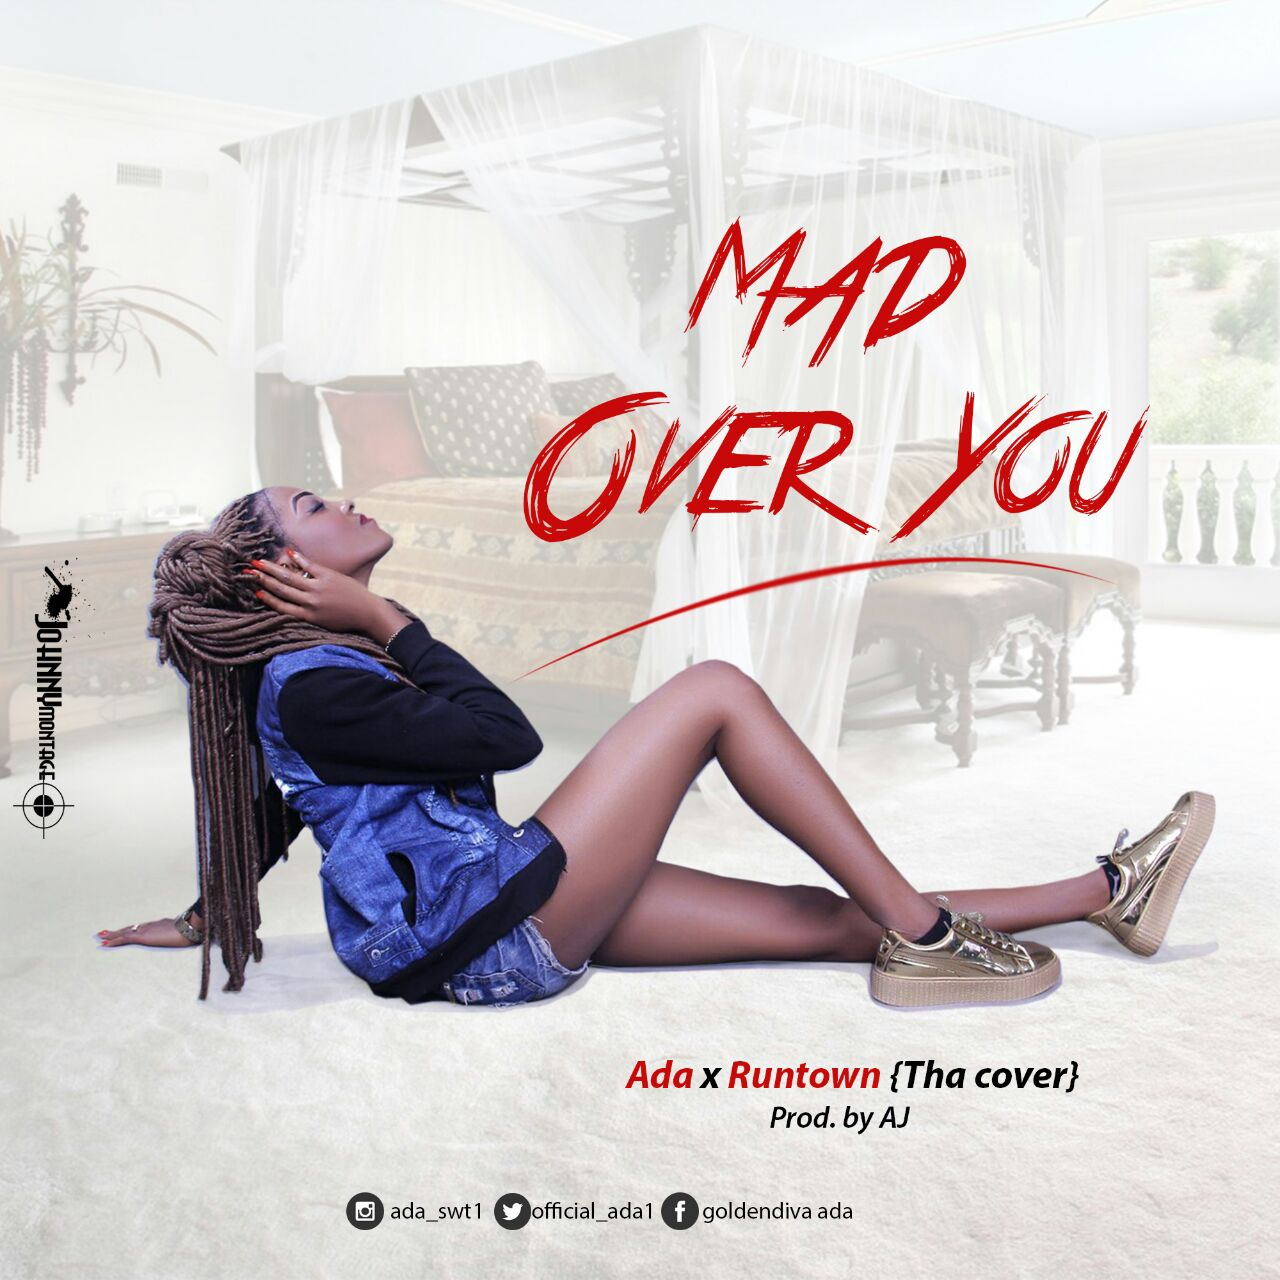 ADA- mad over you (Tha cover by runtown)